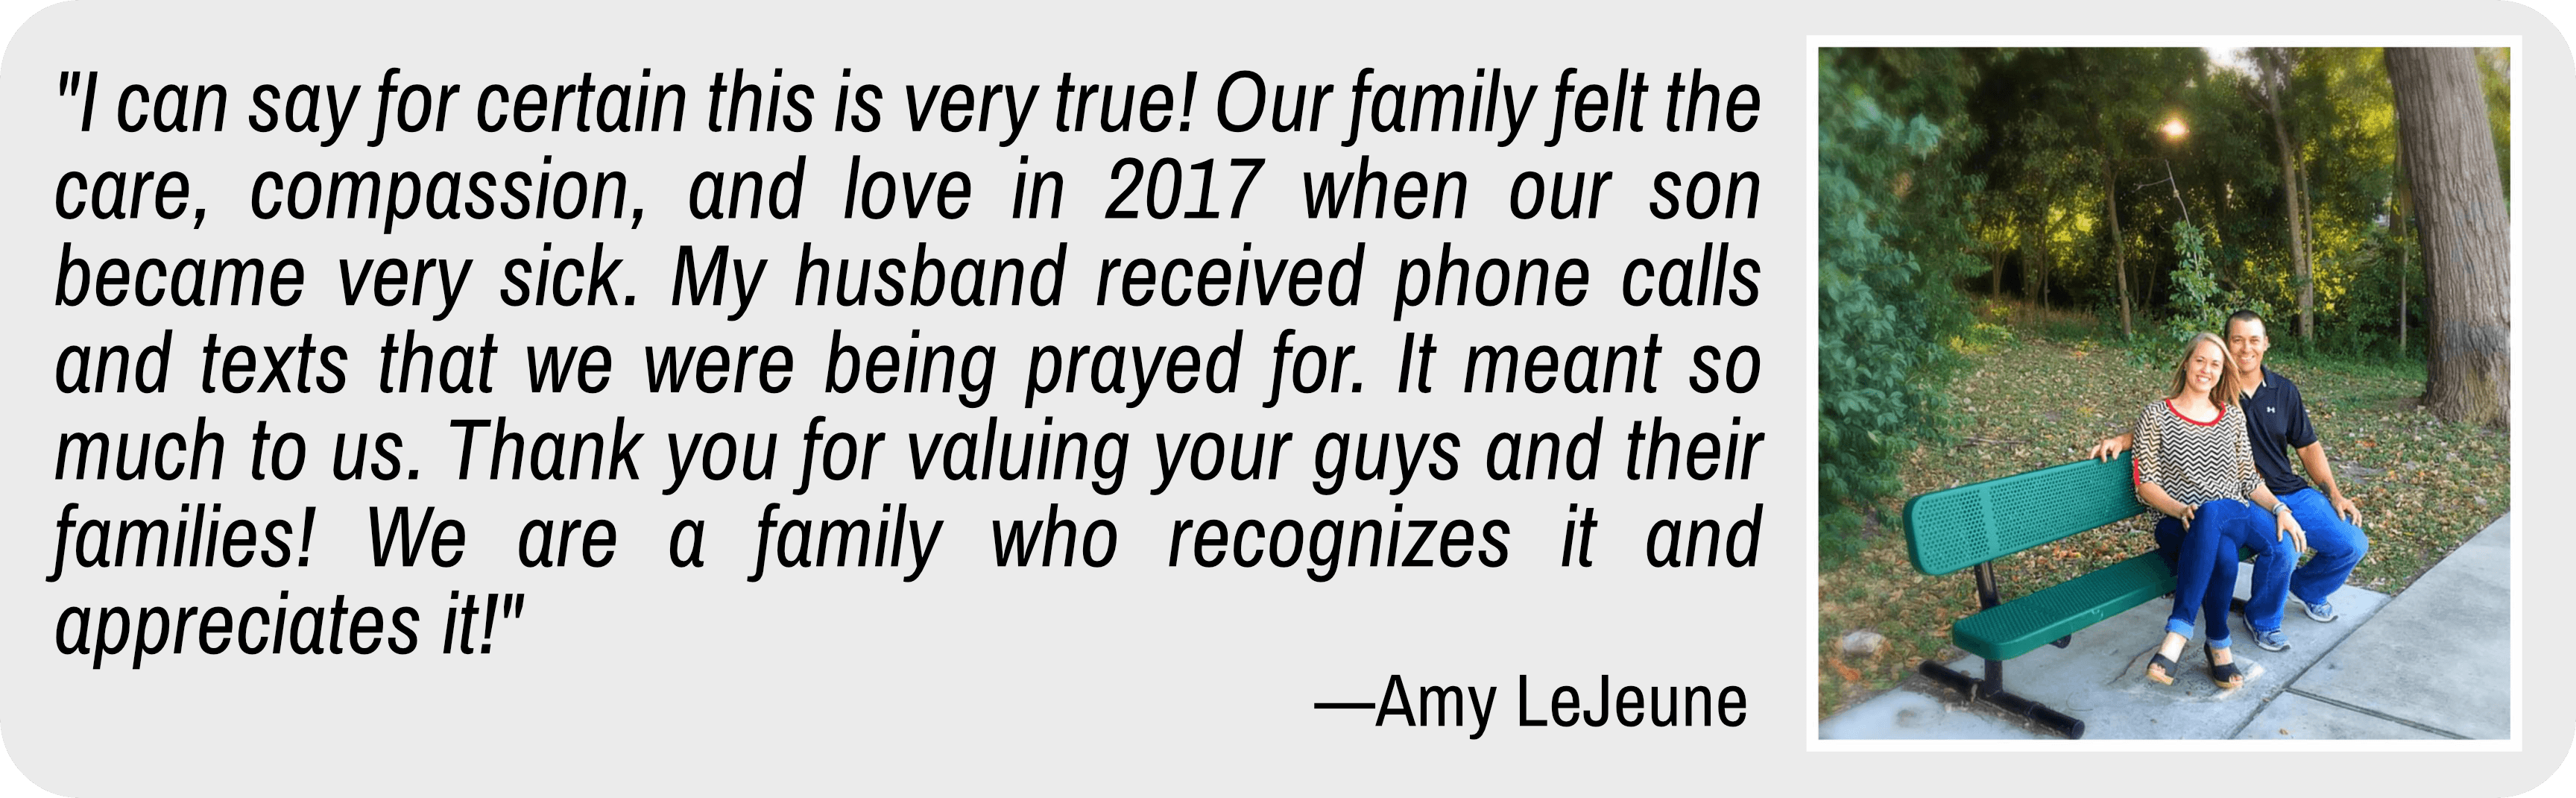 Testimonial quote by Amy LeJeune, with photo of her and her husband